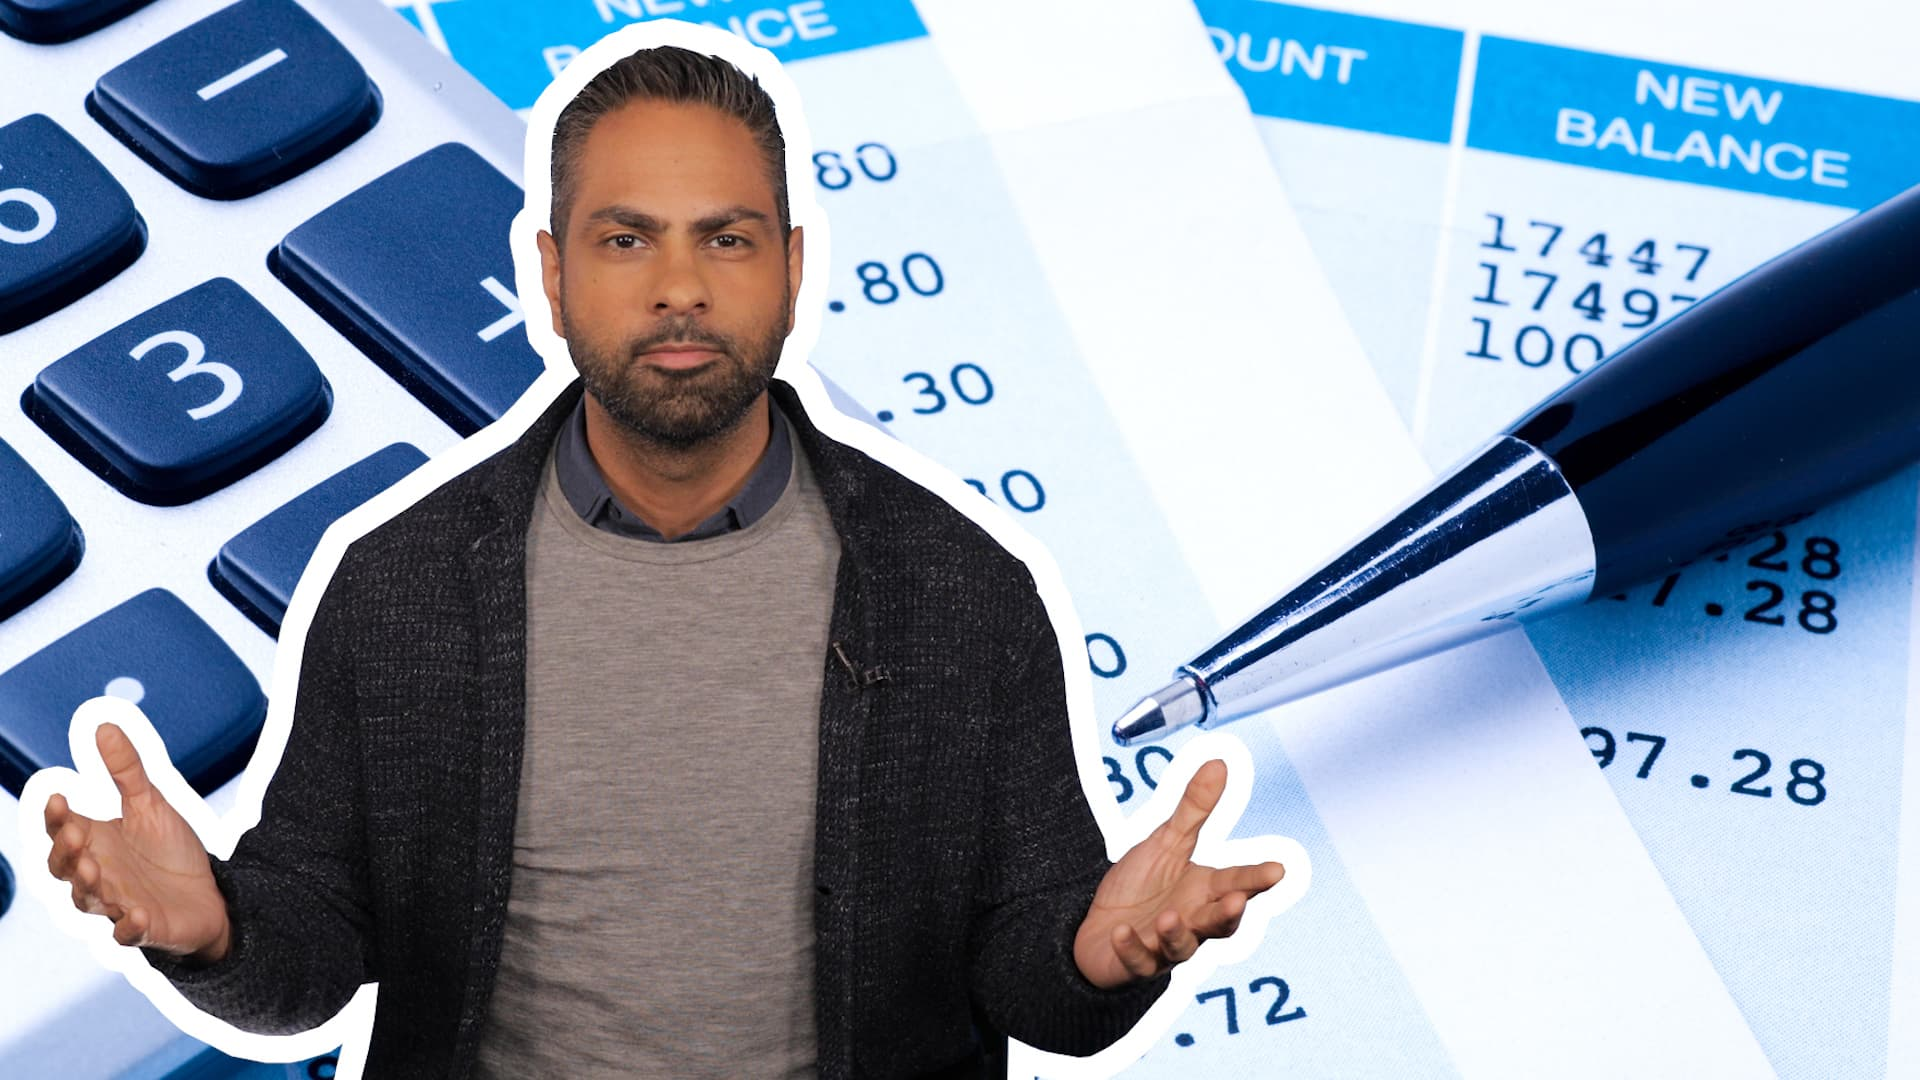 Ramit Sethi explains how to get bank and overdraft fees waived